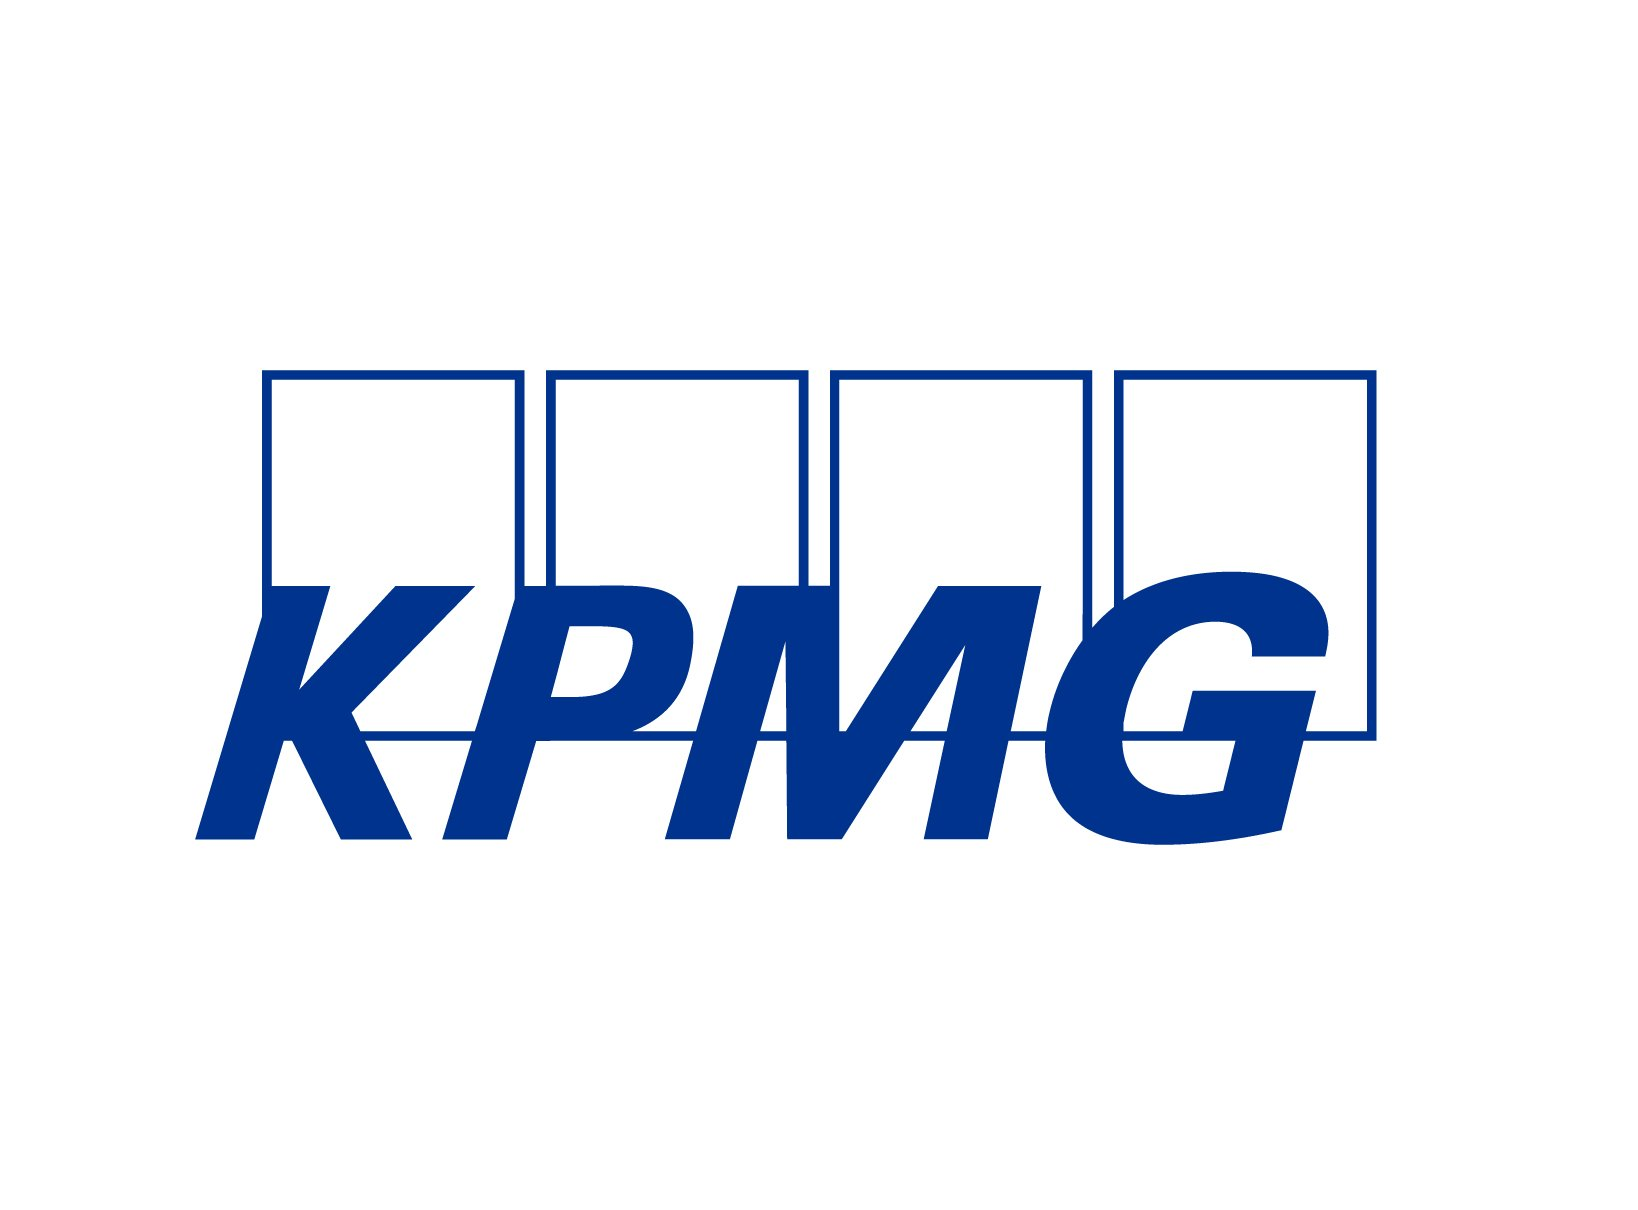 The 2016 Social & Community Investment Awards: KPMG